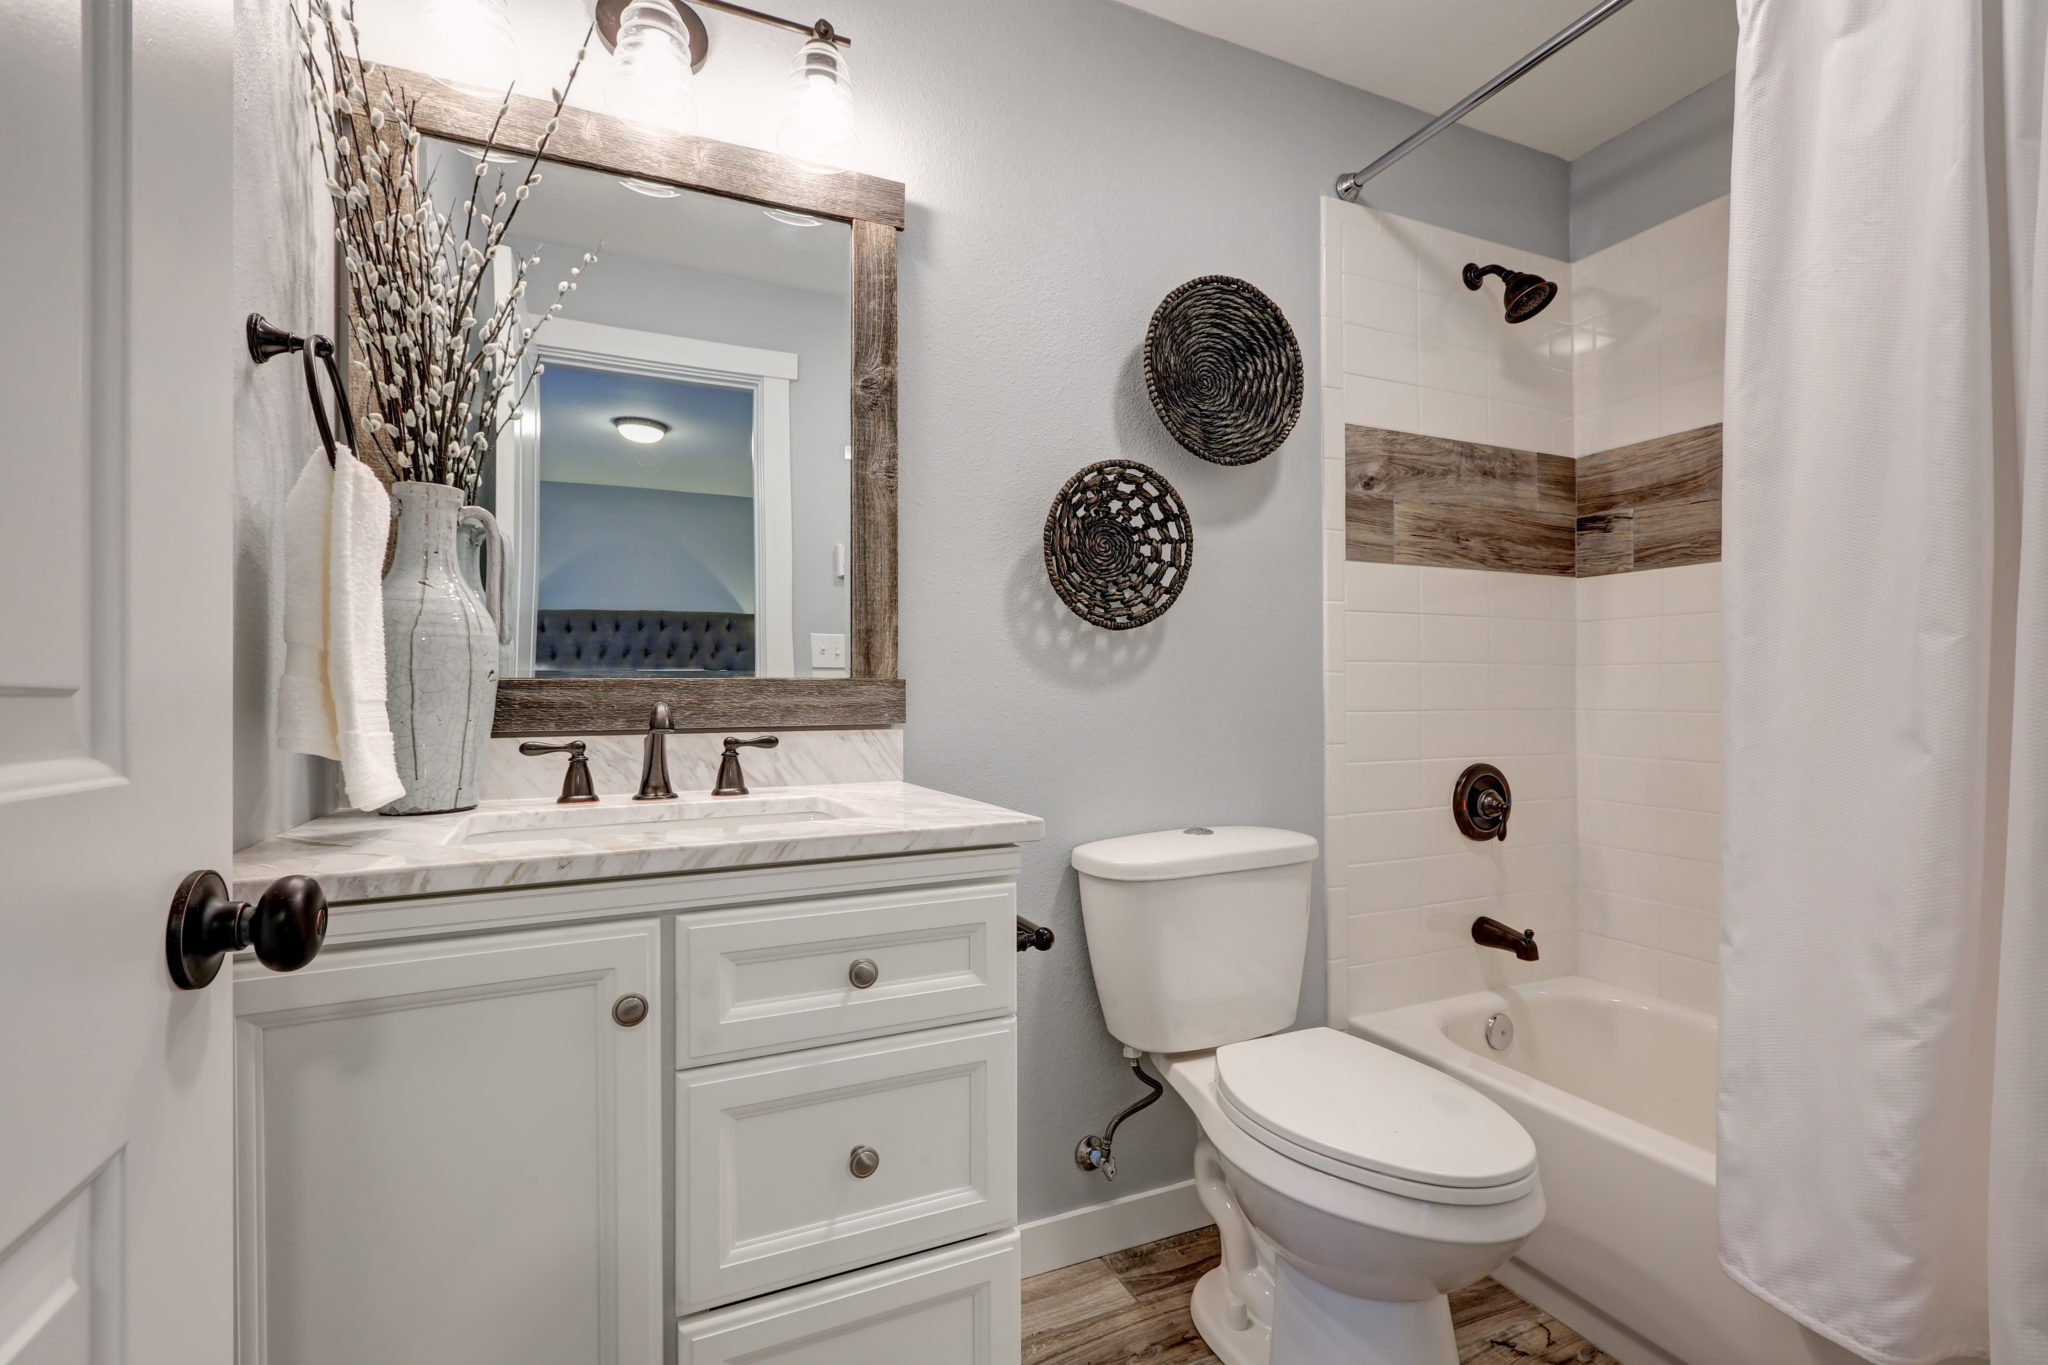 8 tips for a bathroom remodel on a budget the money pit Small bathroom remodel designs